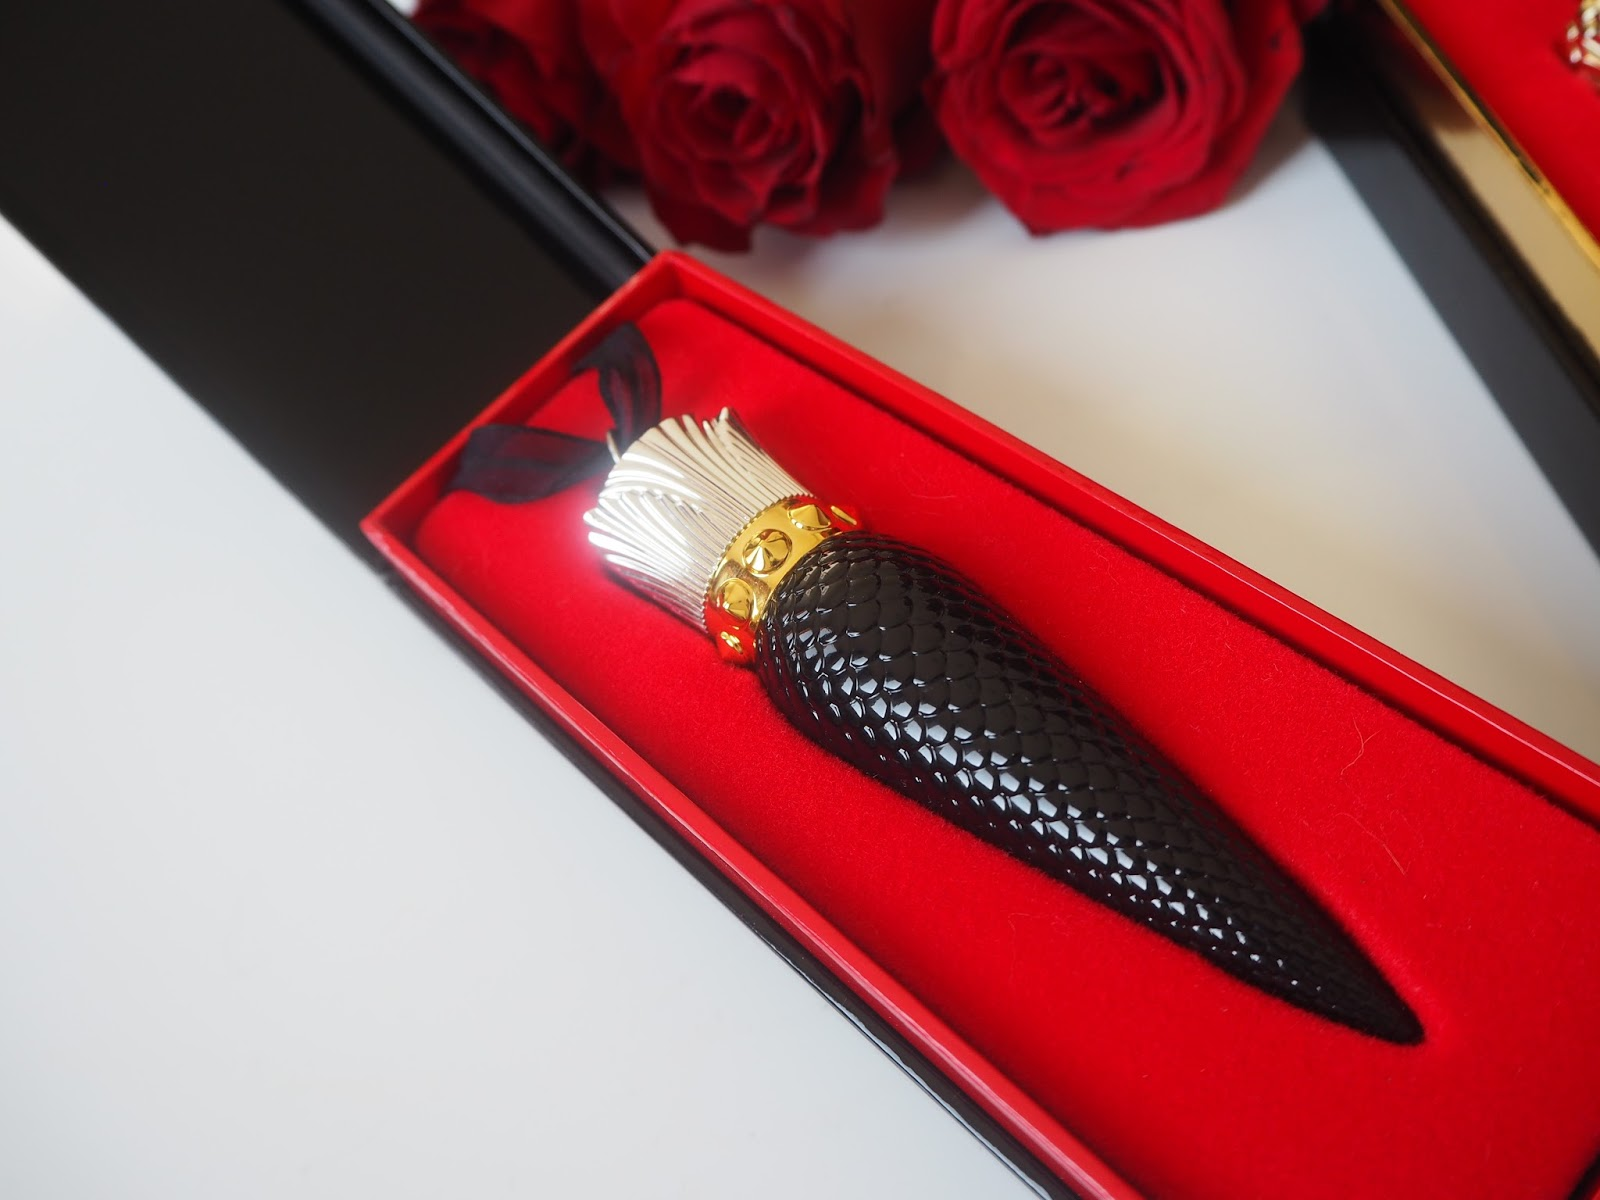 Christian Louboutin Lipsticks review-Rouge Louboutin Sheer Voile